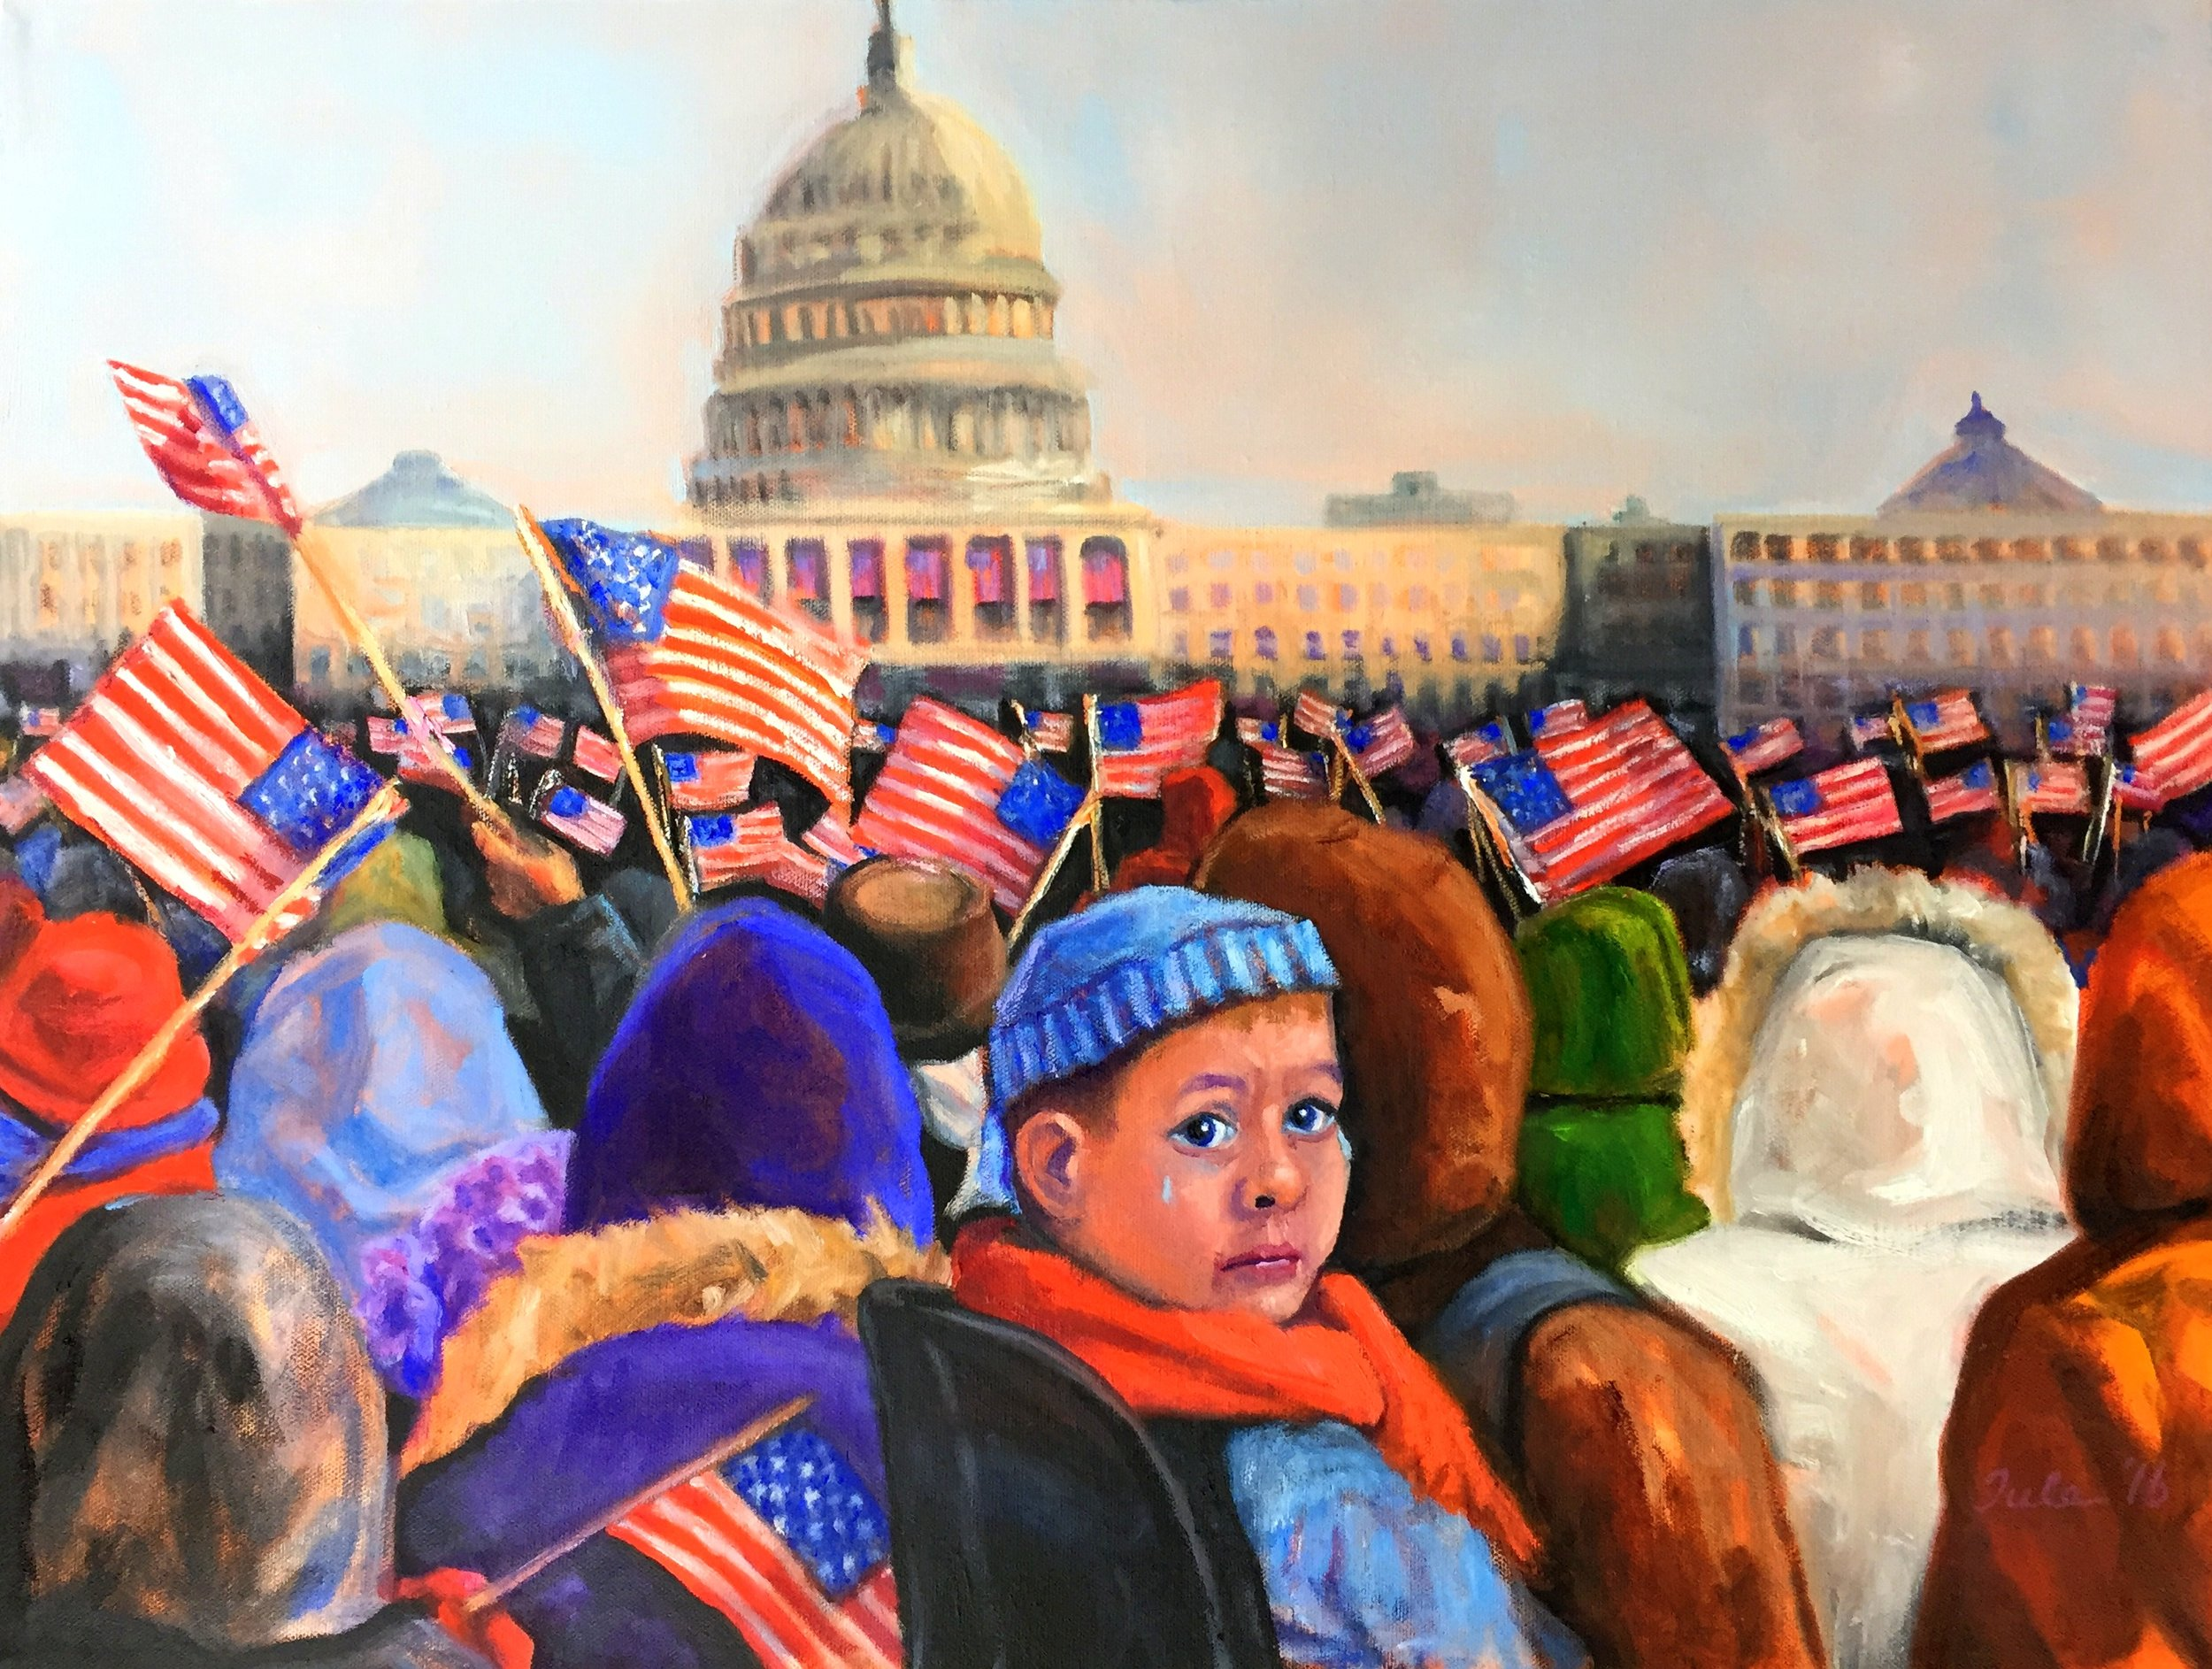 The 2017 Inauguration- What Have You Done?- Copyright 2016